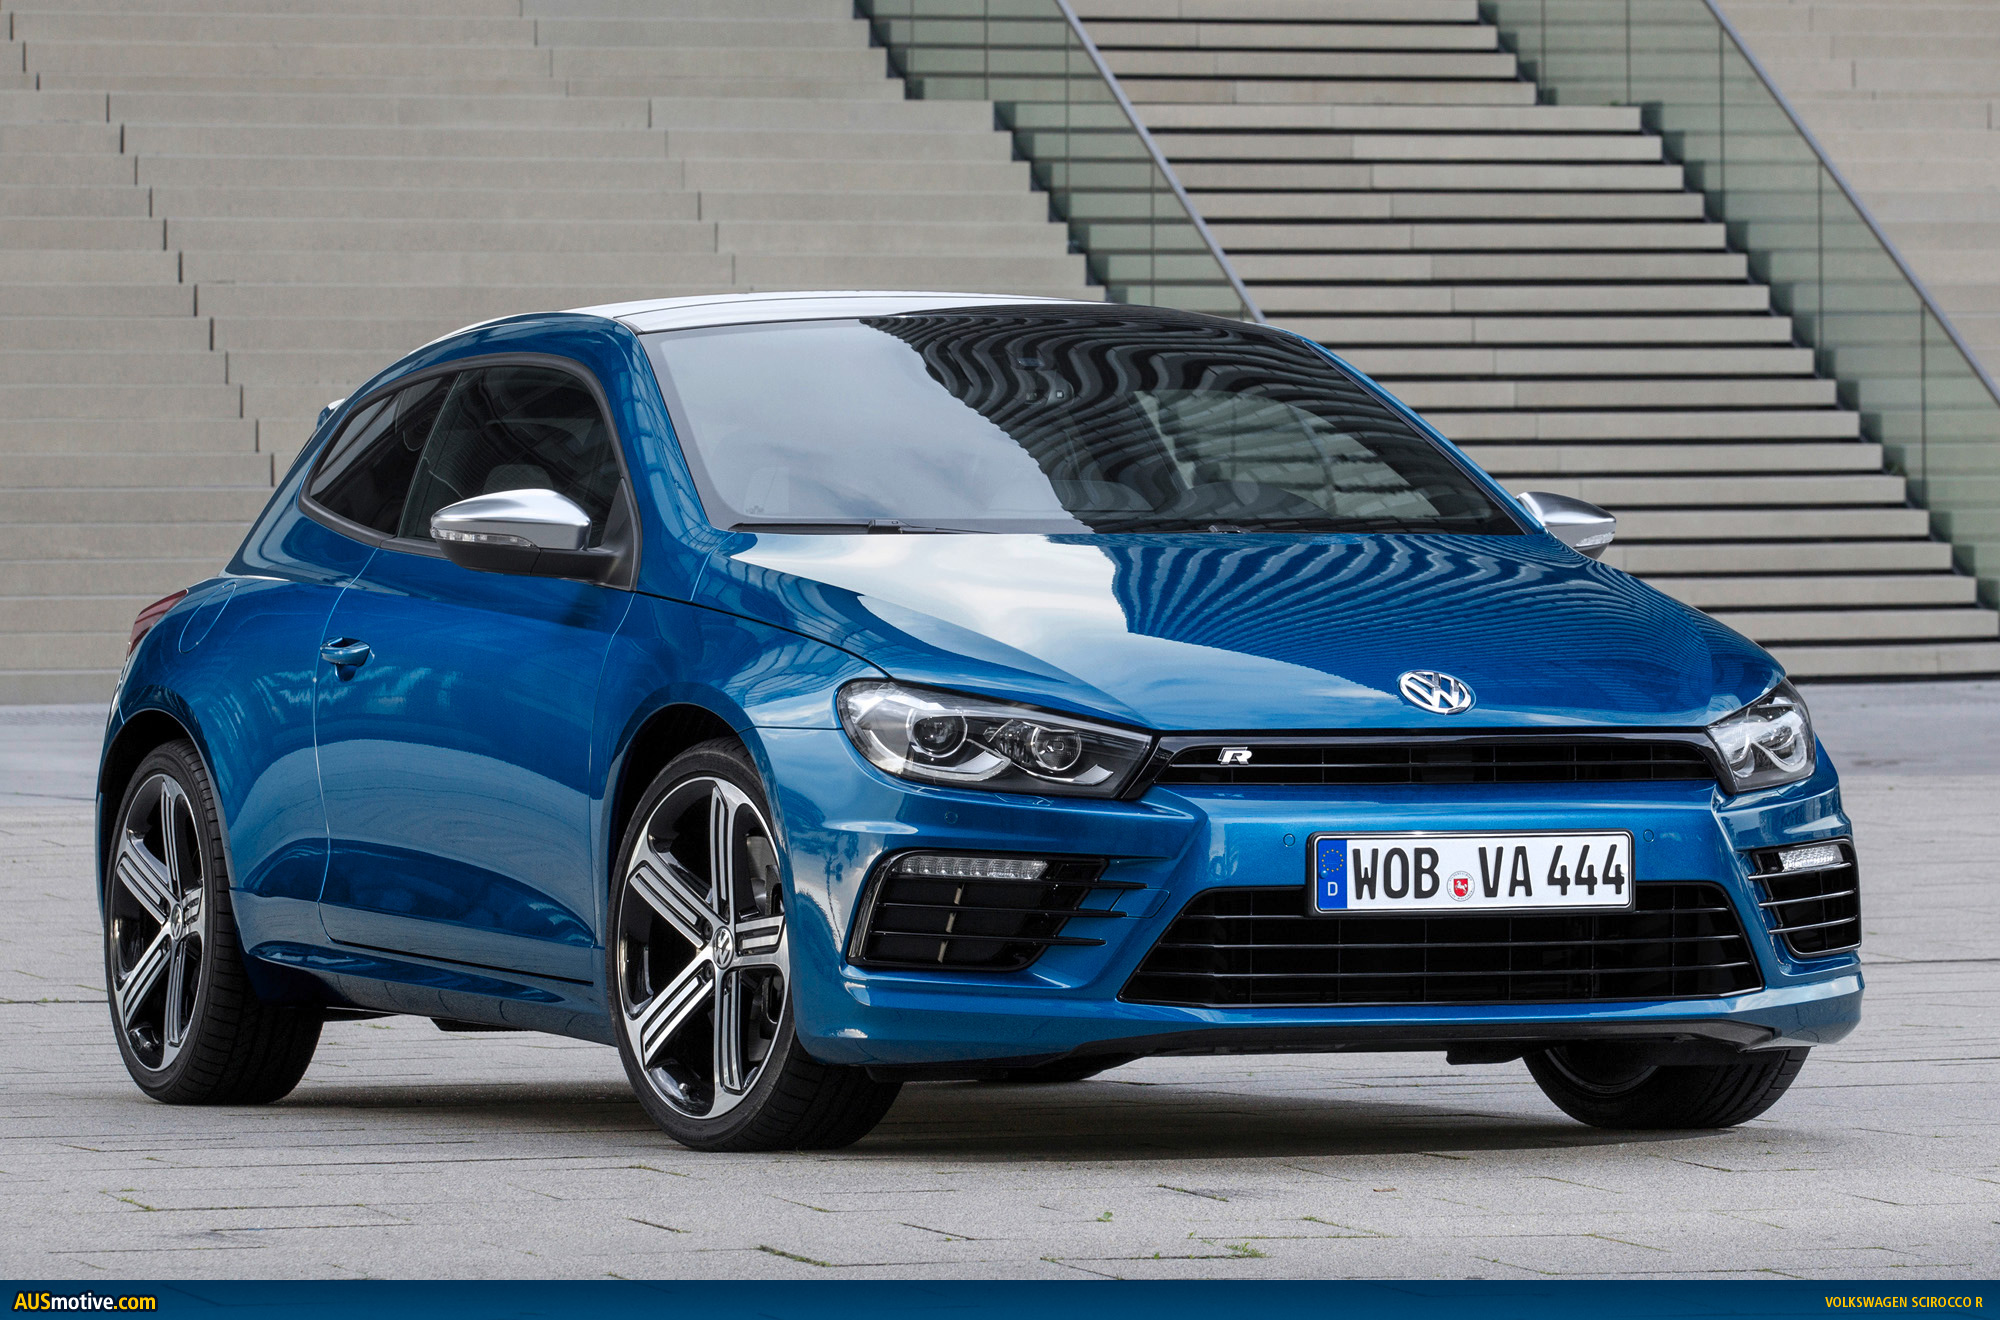 AUSmotive.com » Volkswagen Gives New Scirocco R More Power